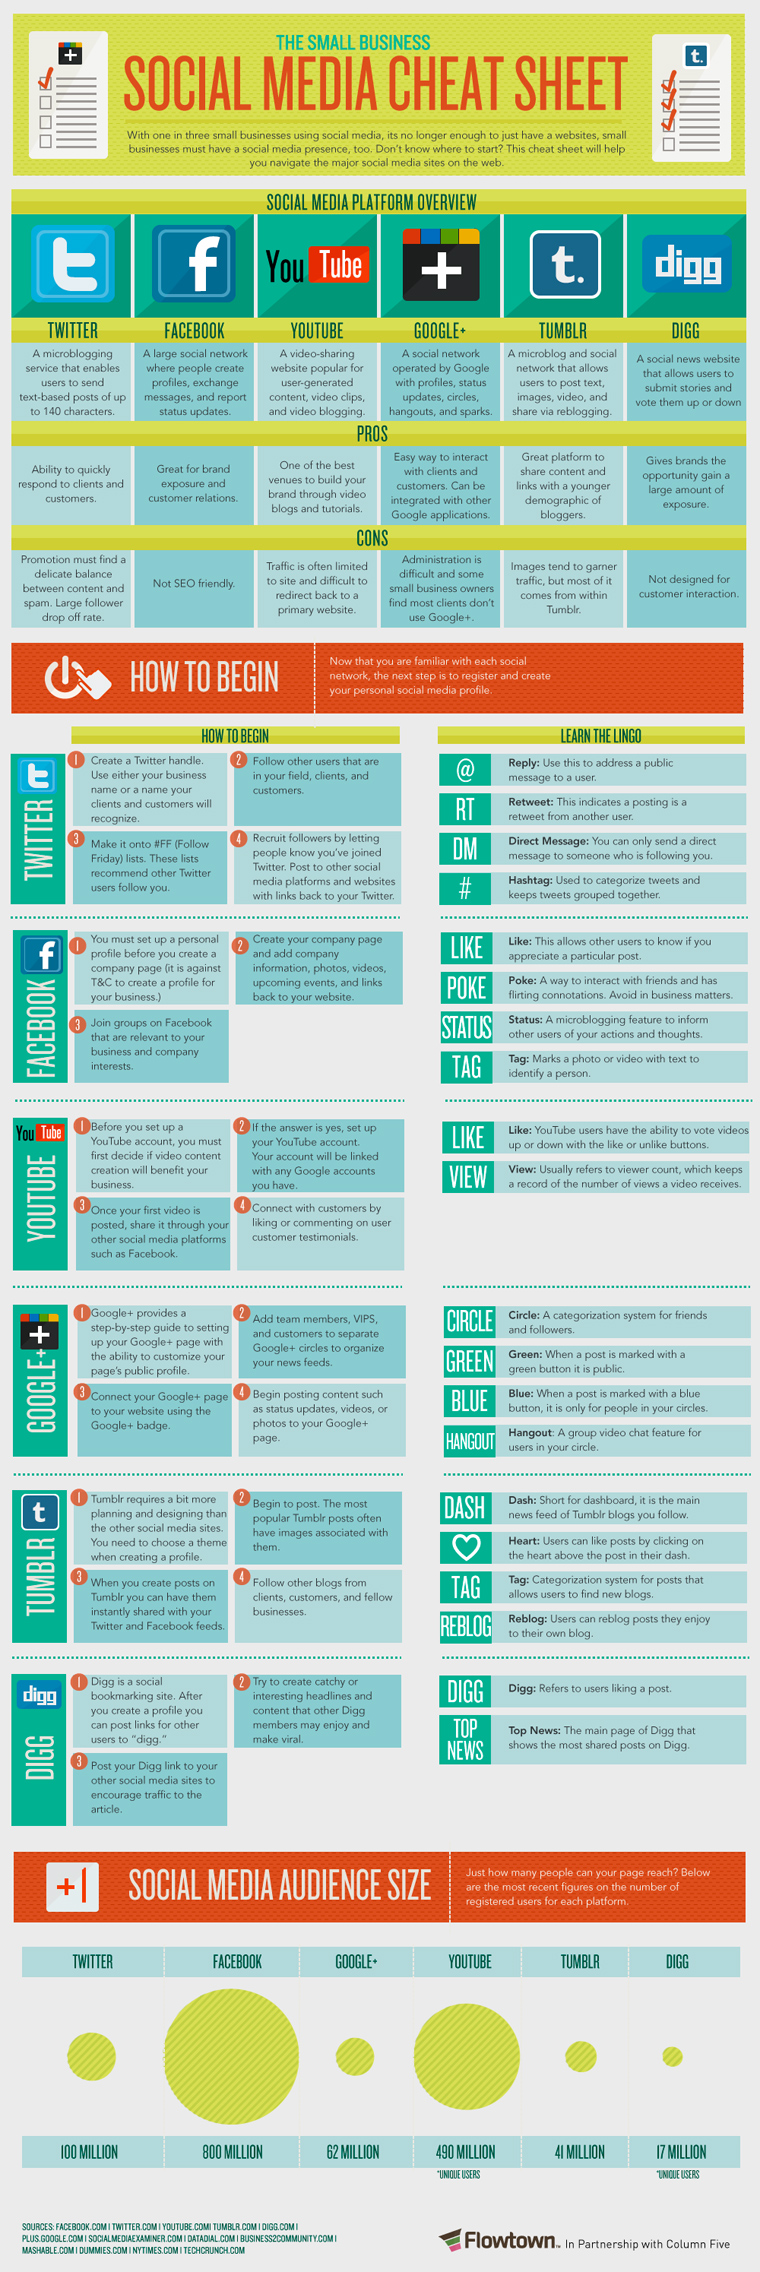 social-media-cheat-sheet-760